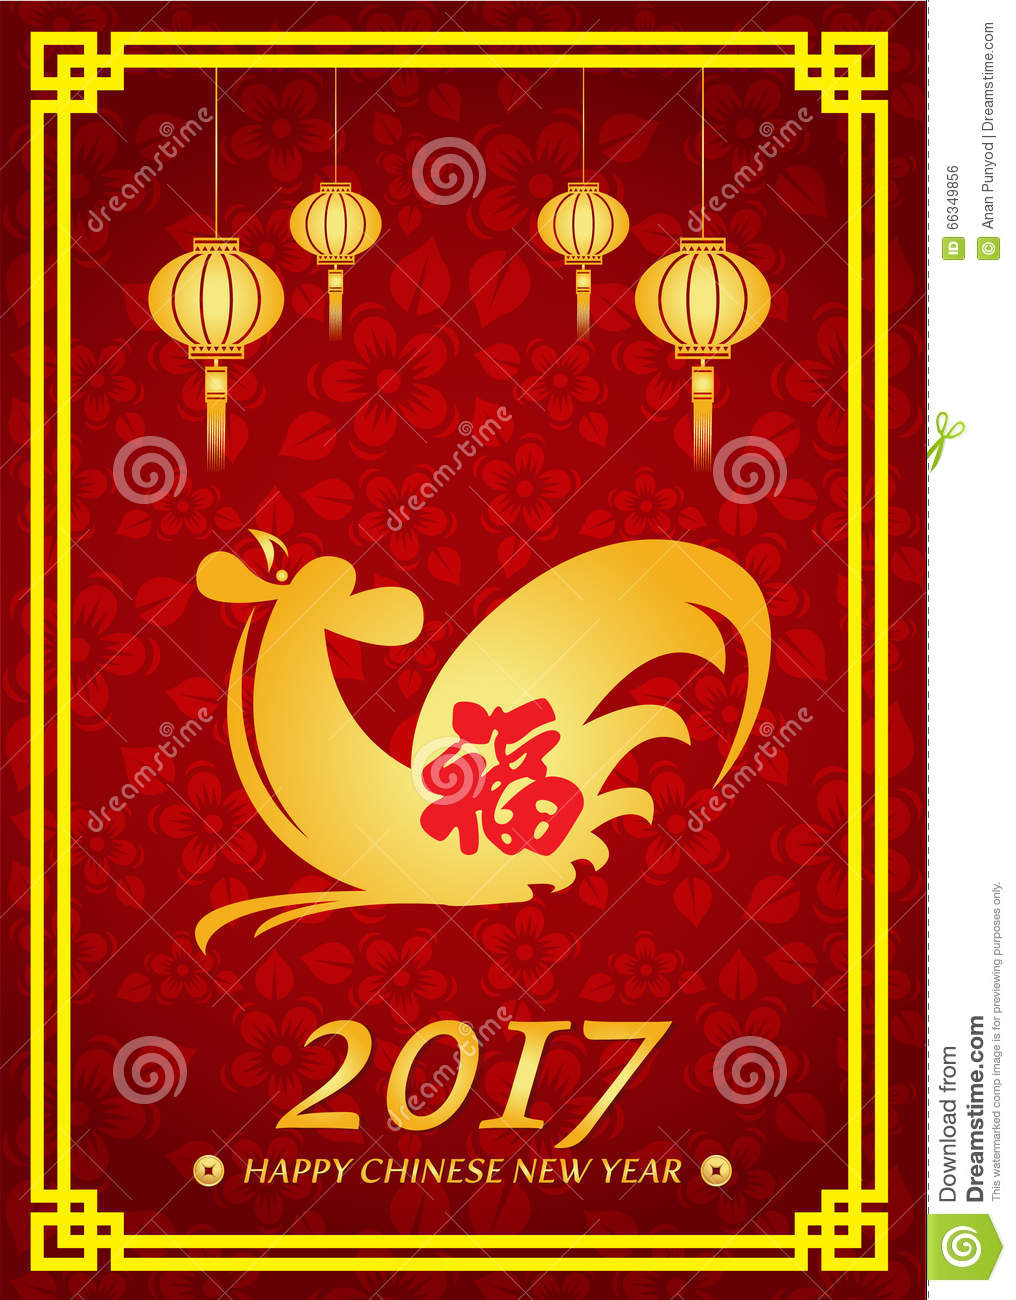 Cute Chinese New Thumbsdreamstime Z E684